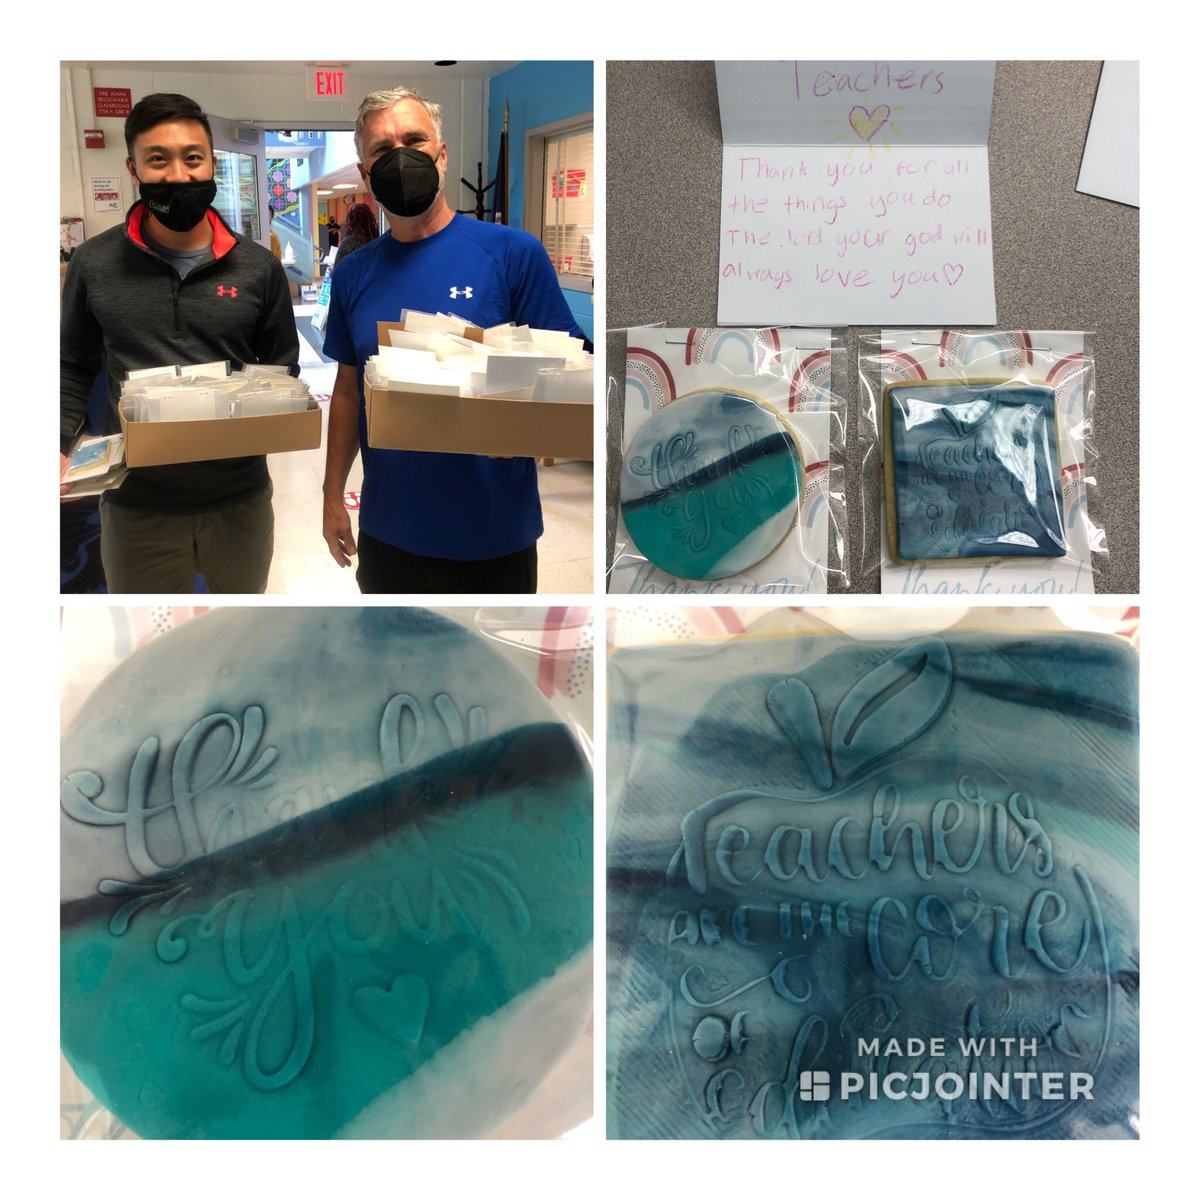 Thank you so much to our friends and neighbors <a target='_blank' href='http://twitter.com/CapitalLife'>@CapitalLife</a>  the cookies are beautiful and just as sweet as the handwritten cards to each teacher! <a target='_blank' href='http://search.twitter.com/search?q=TeacherAppreciationWeek'><a target='_blank' href='https://twitter.com/hashtag/TeacherAppreciationWeek?src=hash'>#TeacherAppreciationWeek</a></a> <a target='_blank' href='http://twitter.com/APSVirginia'>@APSVirginia</a> <a target='_blank' href='http://twitter.com/glebepta'>@glebepta</a> <a target='_blank' href='http://search.twitter.com/search?q=GlebeEagles'><a target='_blank' href='https://twitter.com/hashtag/GlebeEagles?src=hash'>#GlebeEagles</a></a> <a target='_blank' href='https://t.co/AkYuogfsIp'>https://t.co/AkYuogfsIp</a>